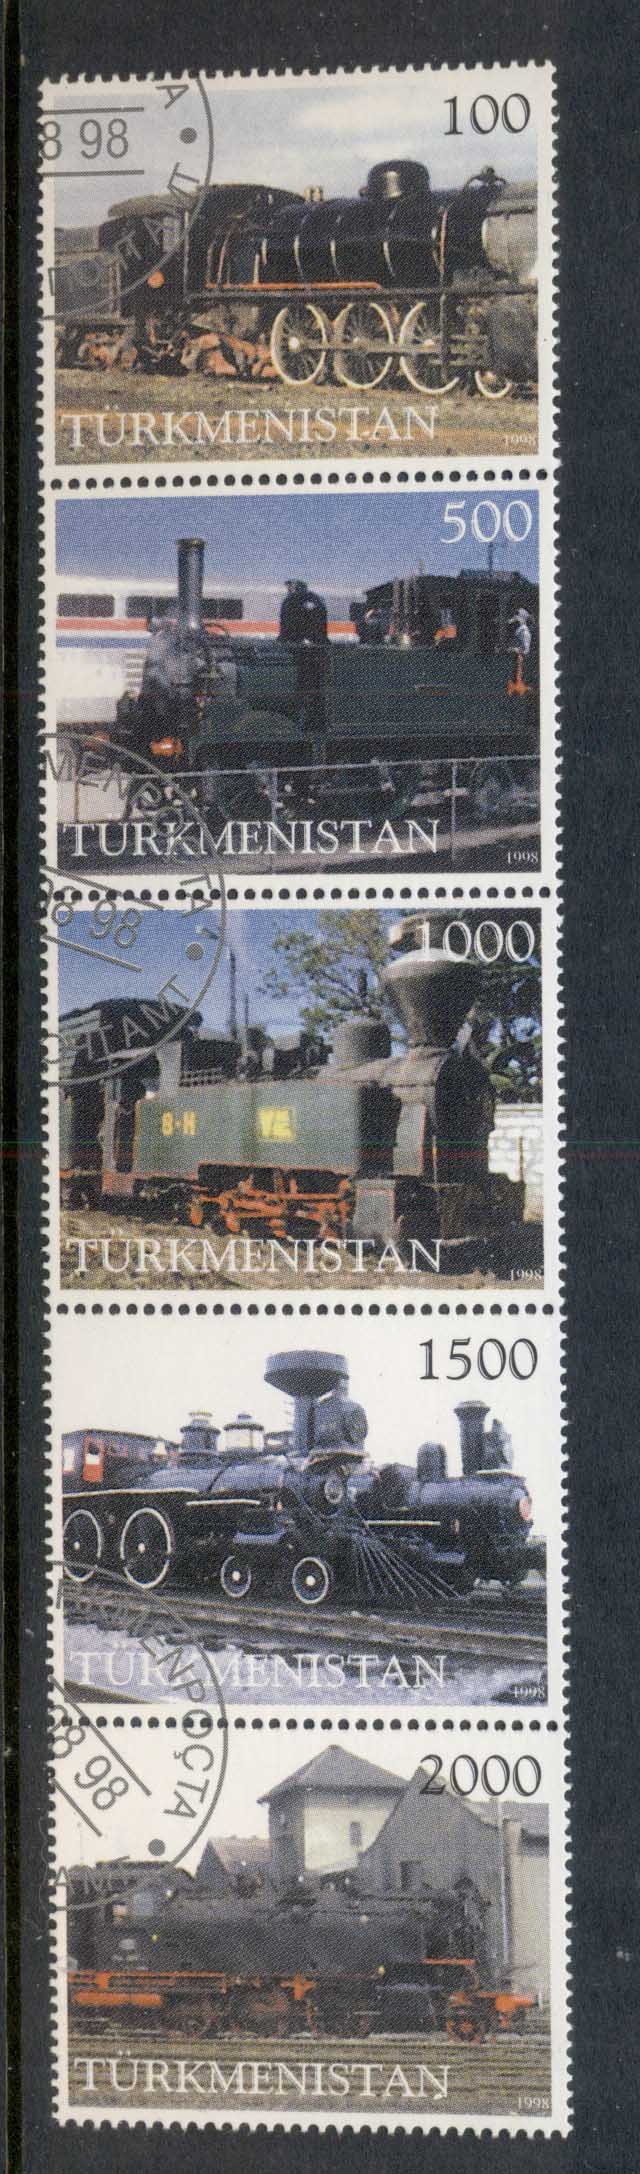 Turkmenistan 1998 Trains str5 CTO